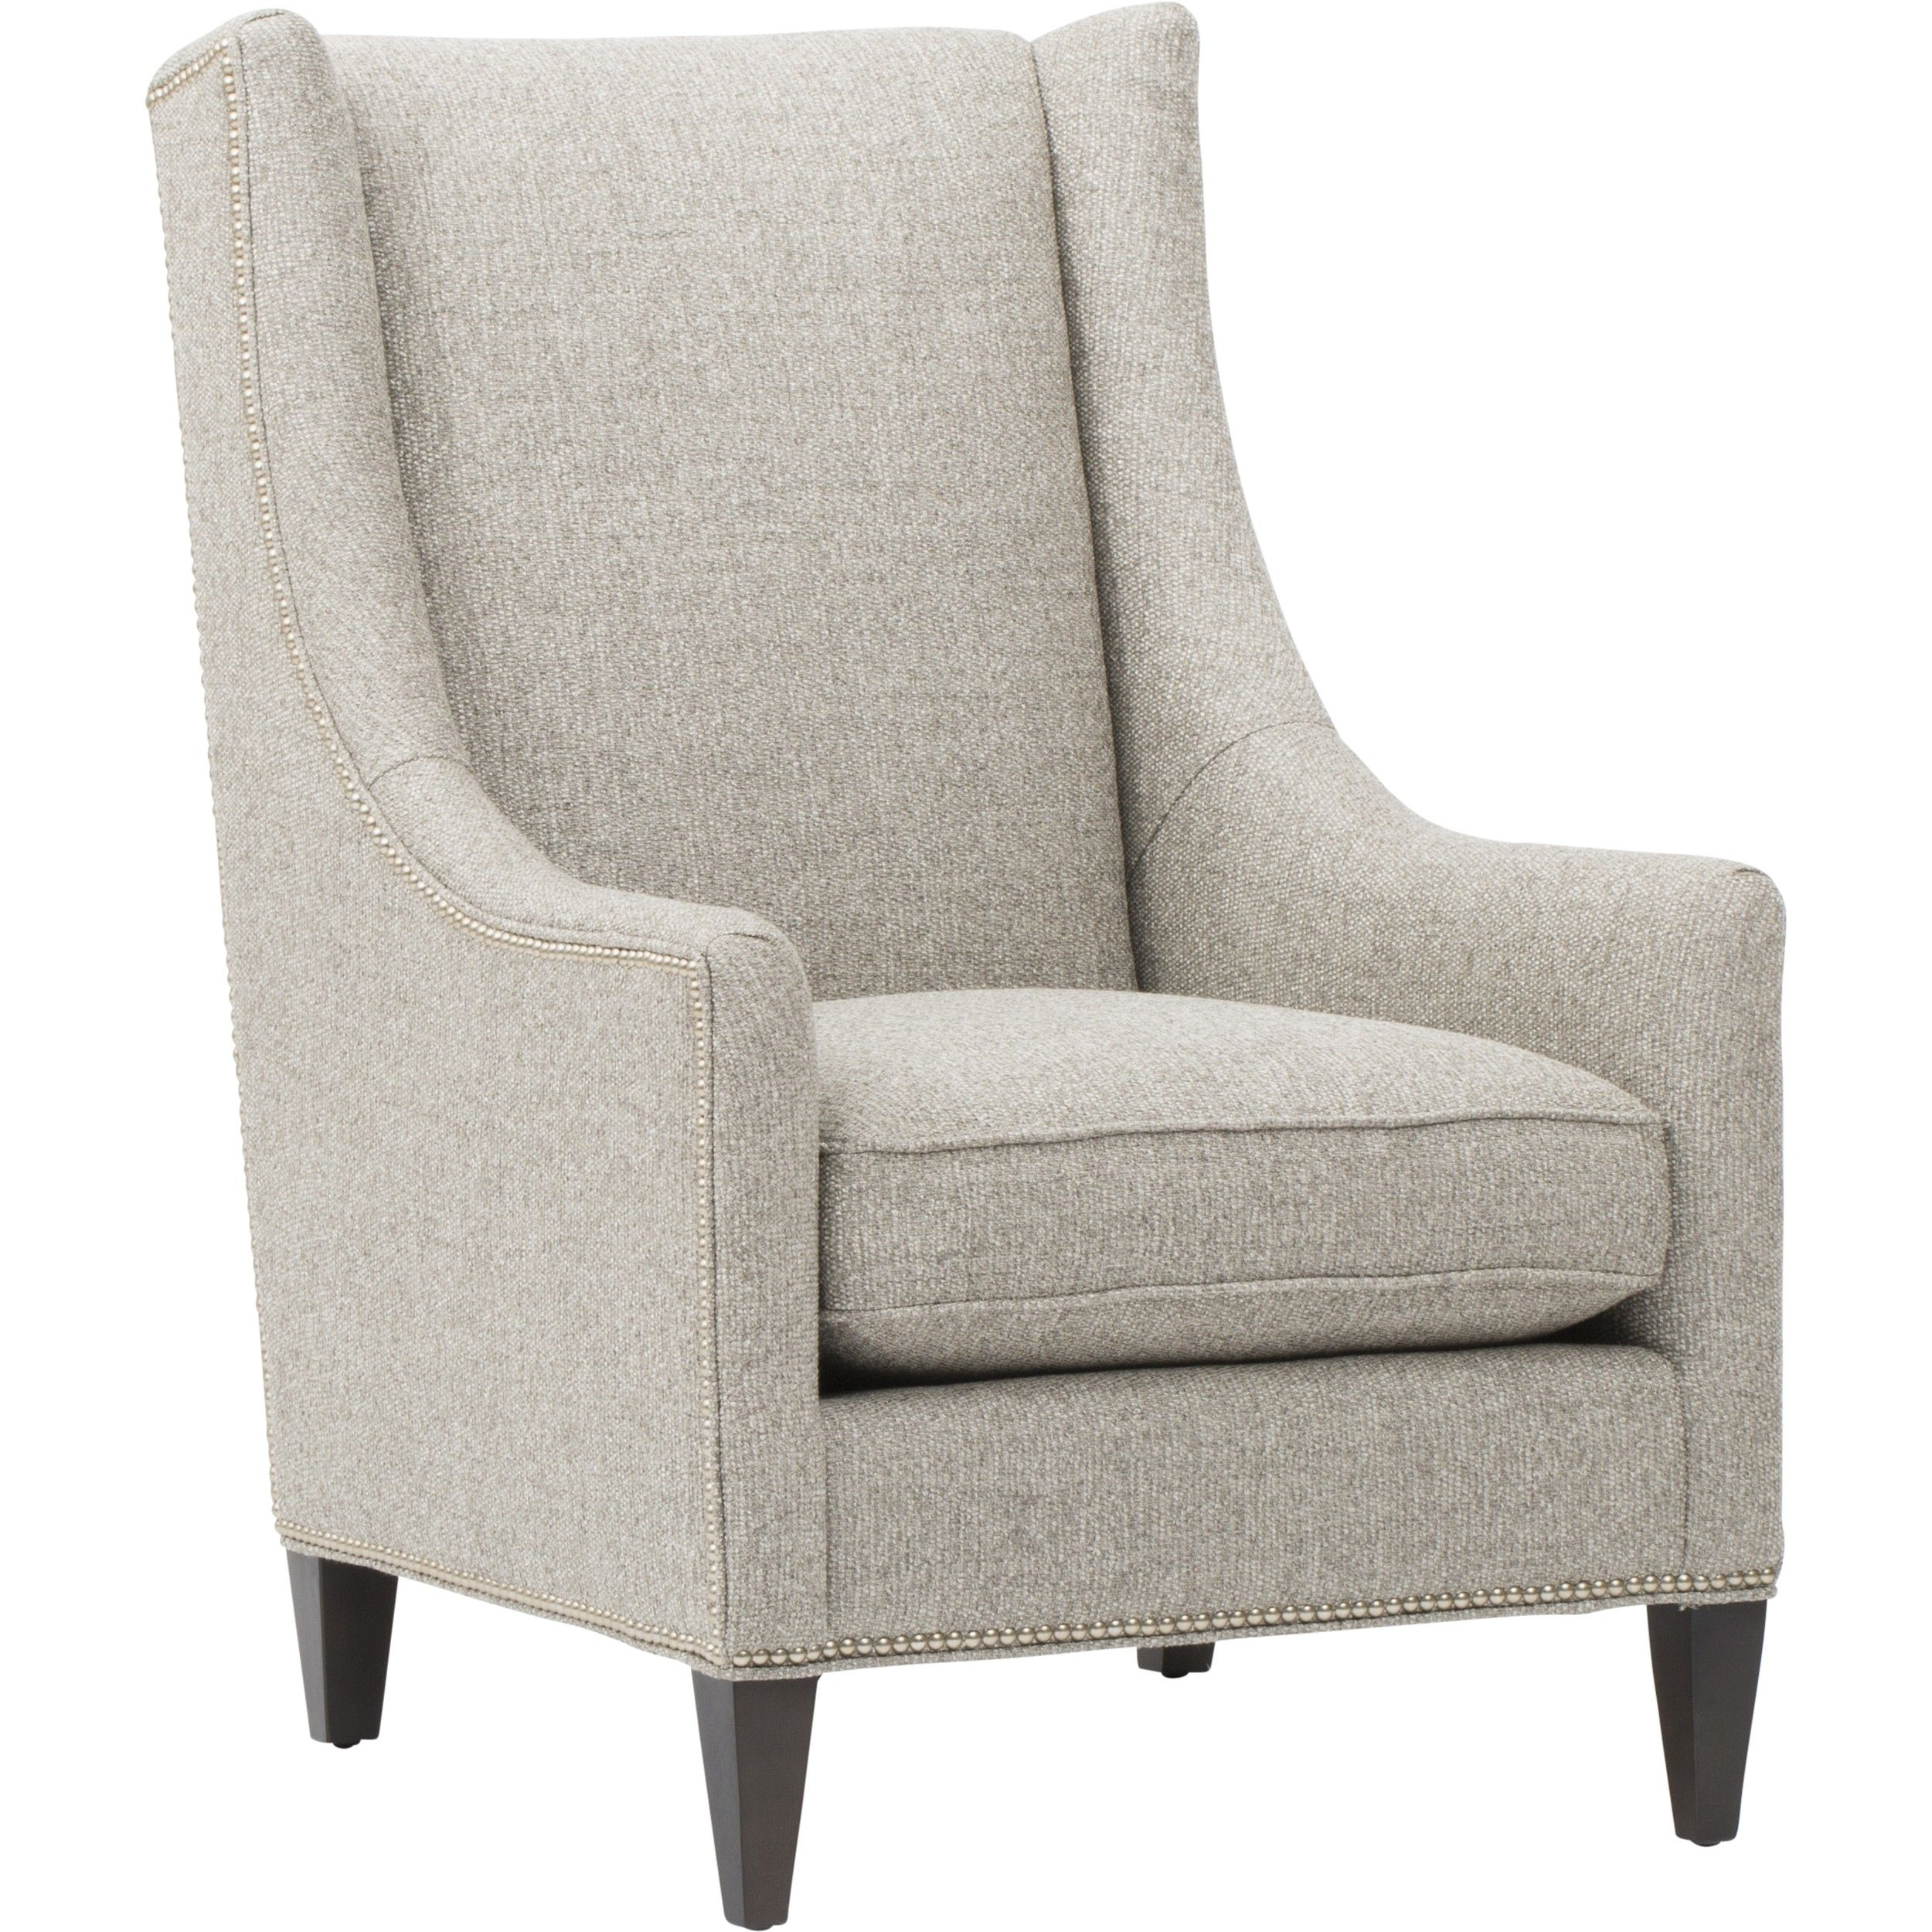 20 Inch Seat Heigh Accent Chair: Dimensions 29w 34d 44h Seat Depth 24d Seat Height 20h Arm